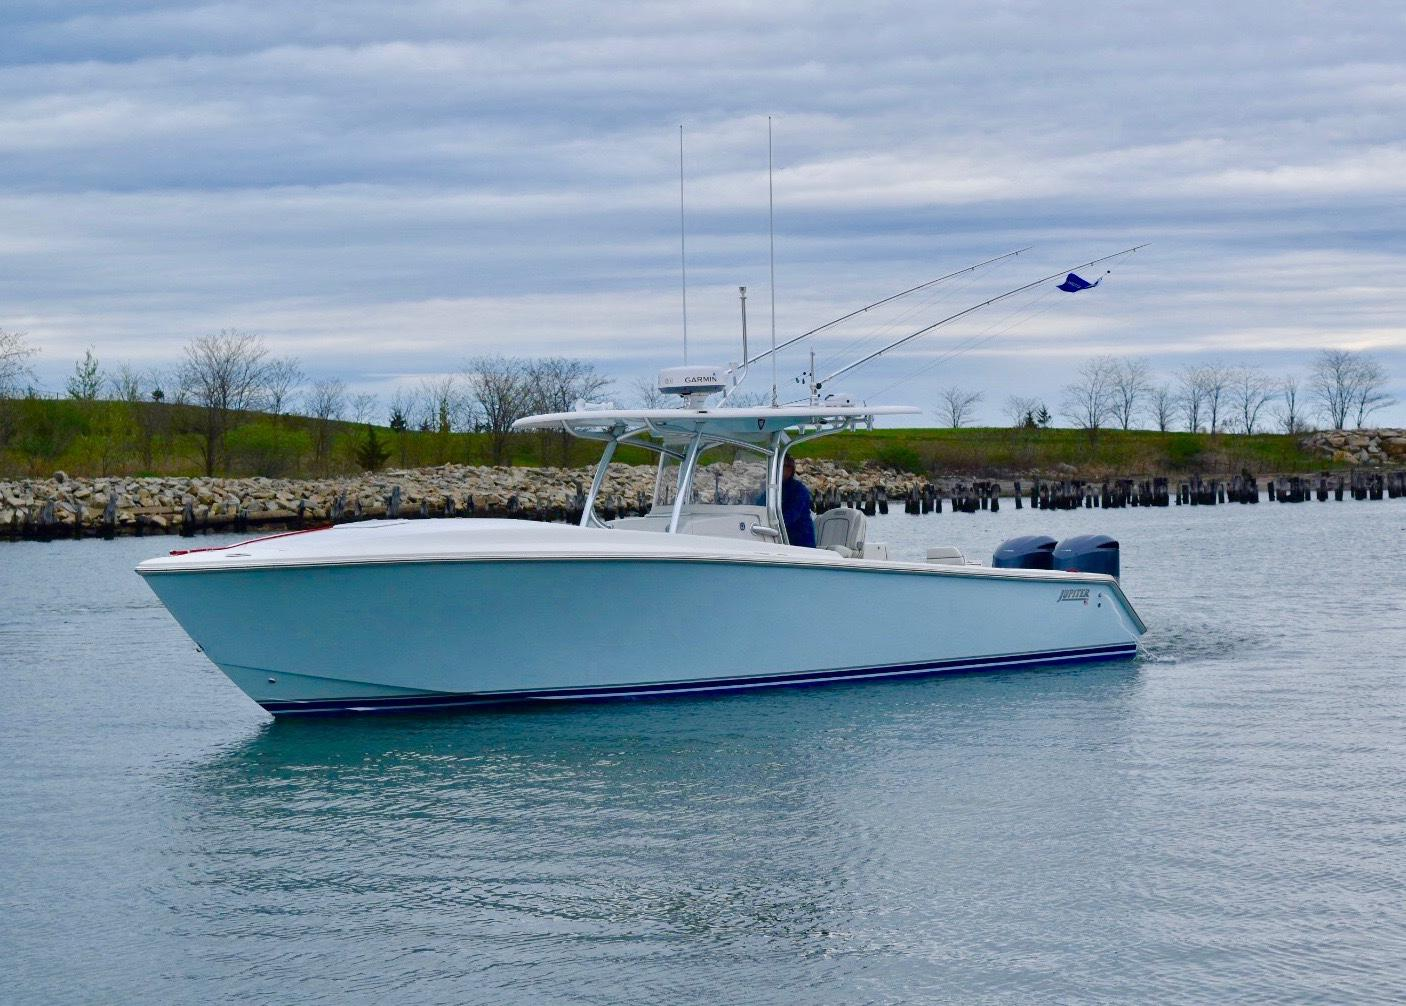 Yacht for Sale: 38' Jupiter Center Console Cuddy 2013